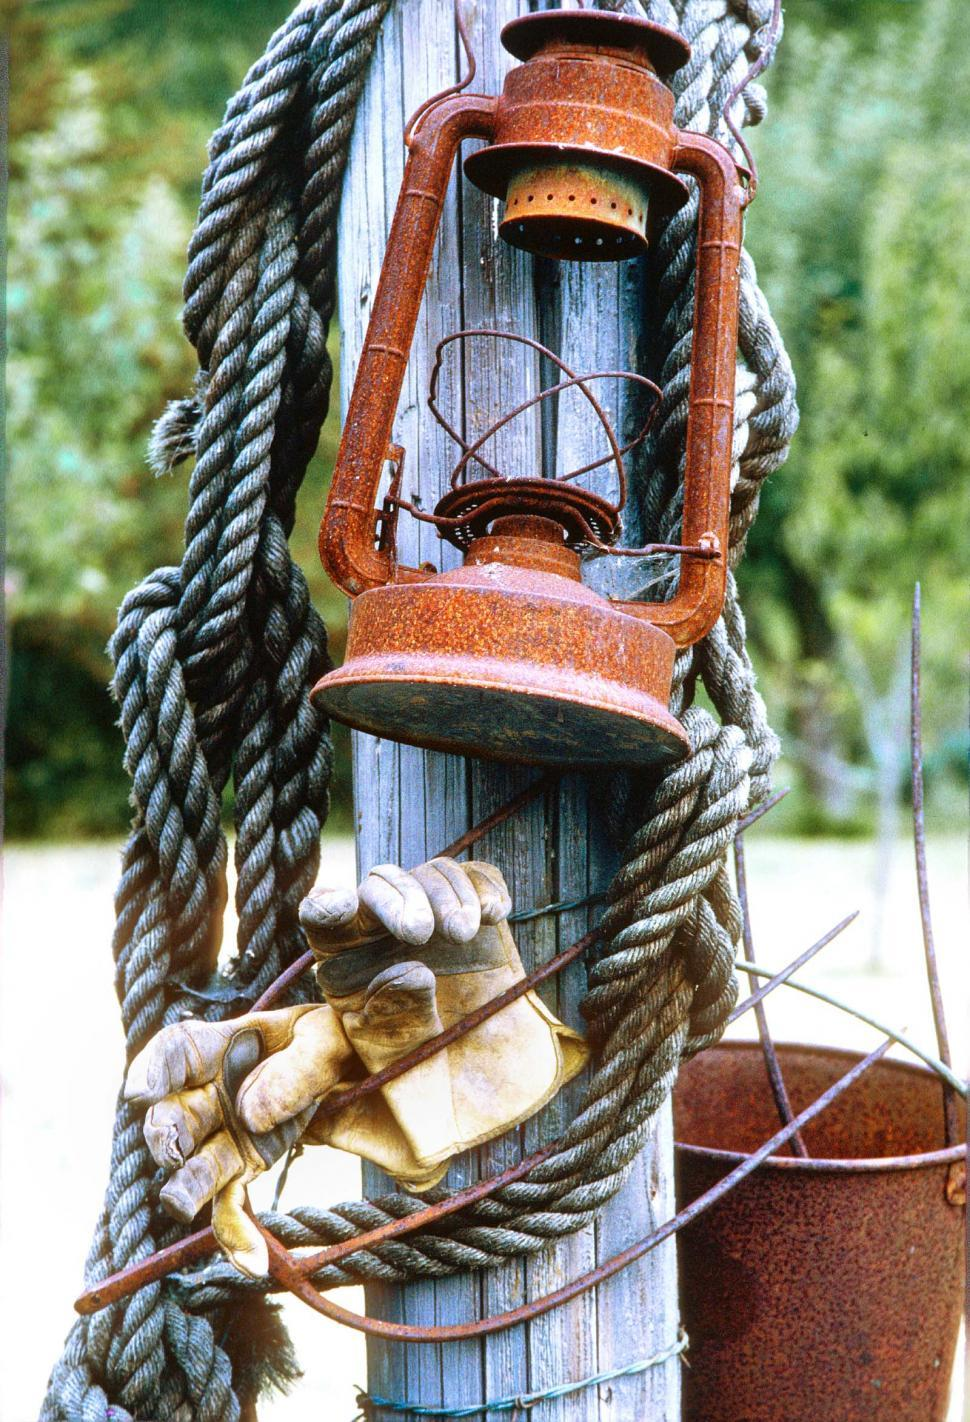 Download Free Stock HD Photo of Old lantern, rope, gloves Online